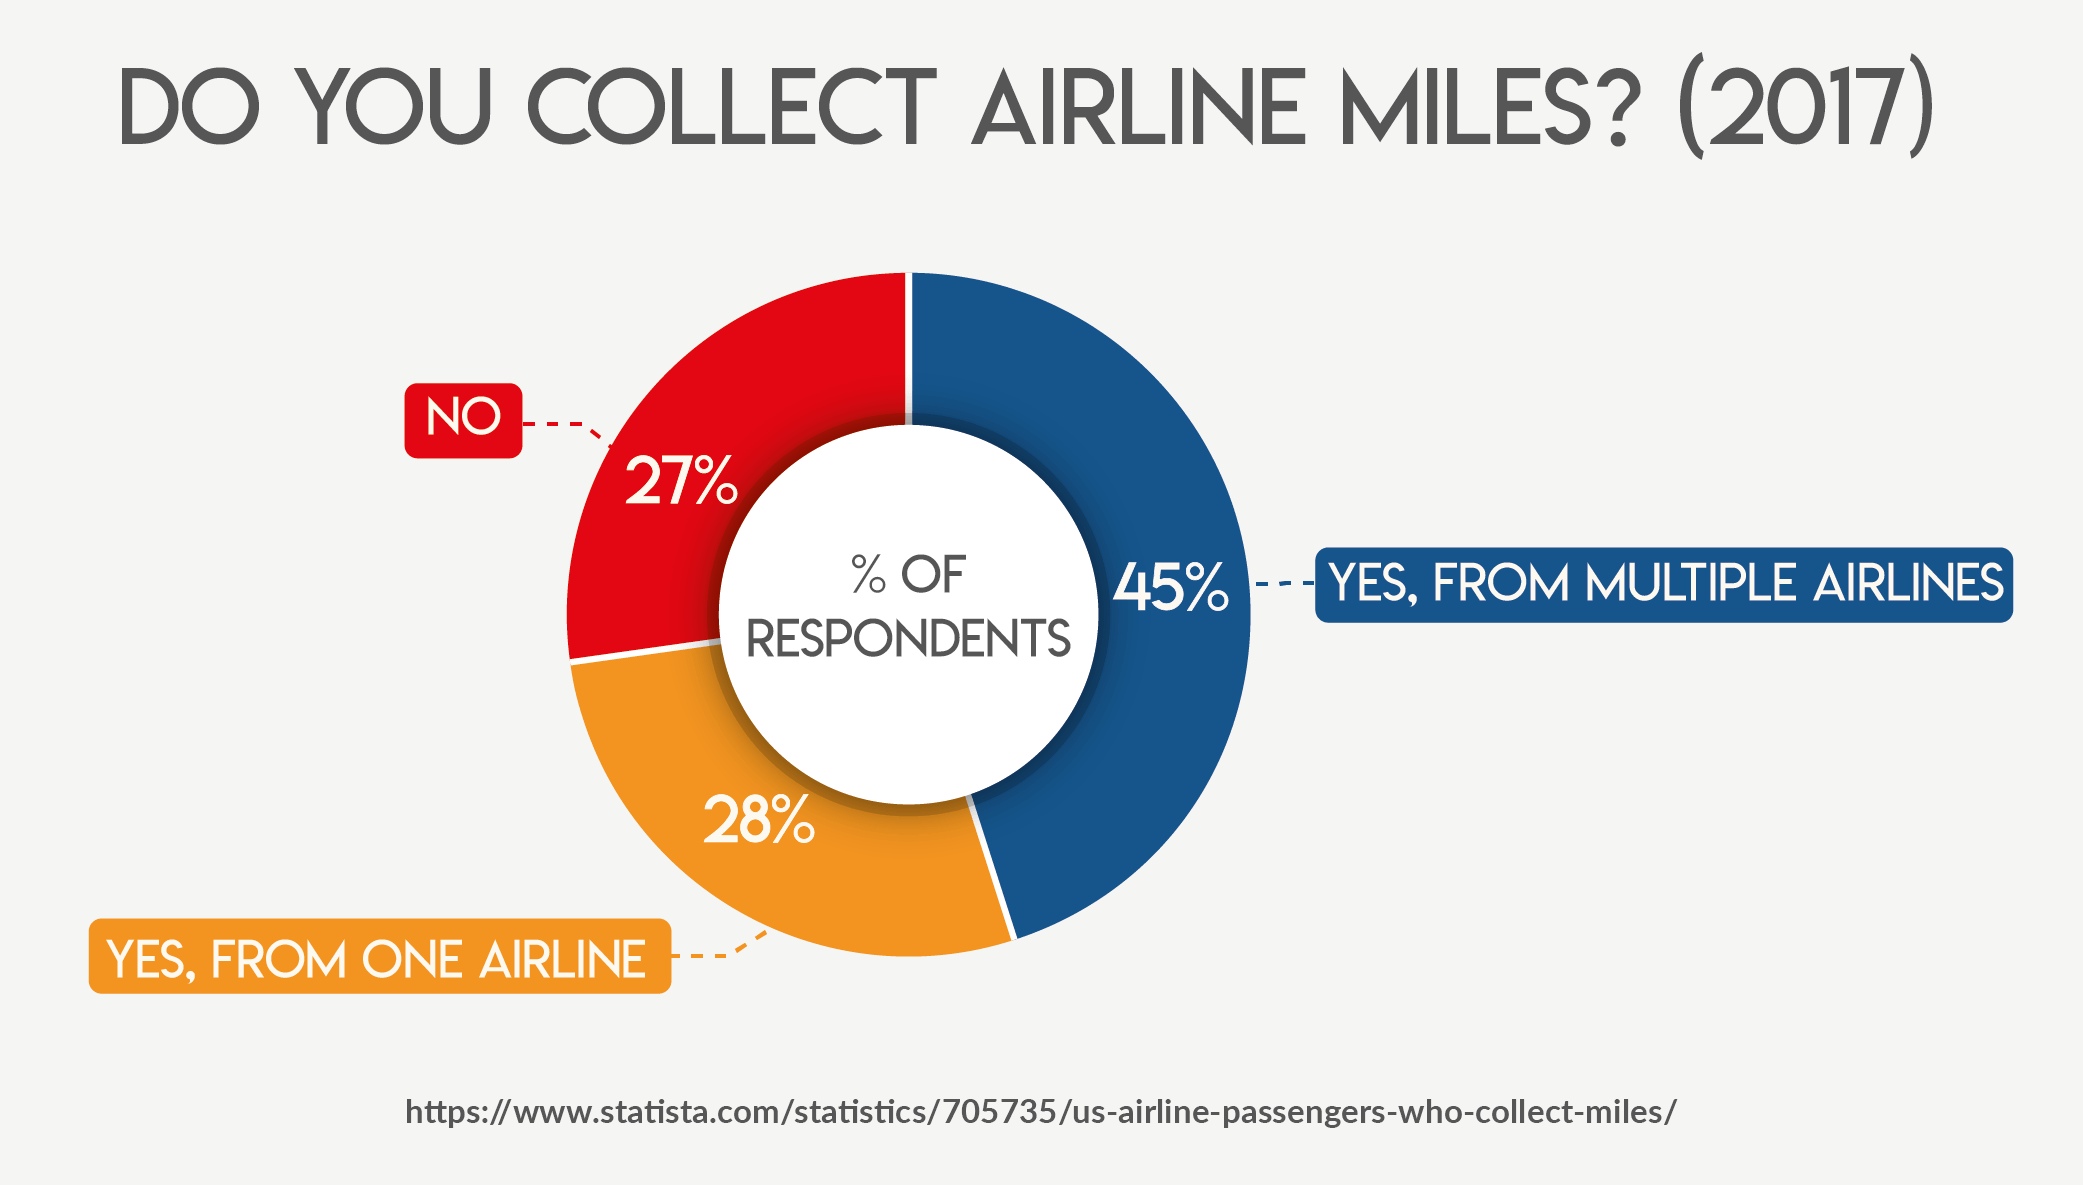 Do You Collect Airline Miles? (2017)